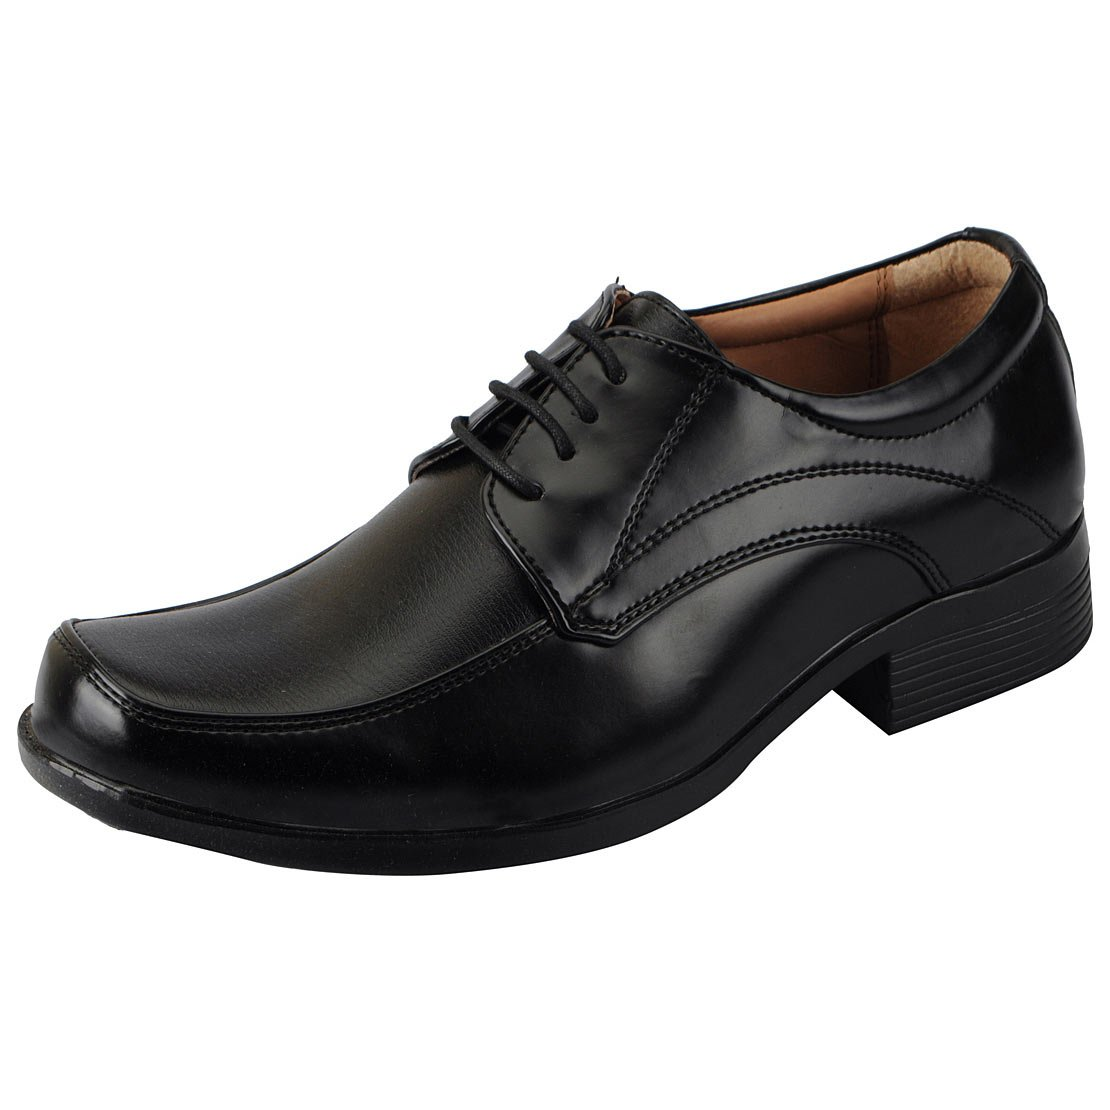 Bata lace-up formal shoes under 1000